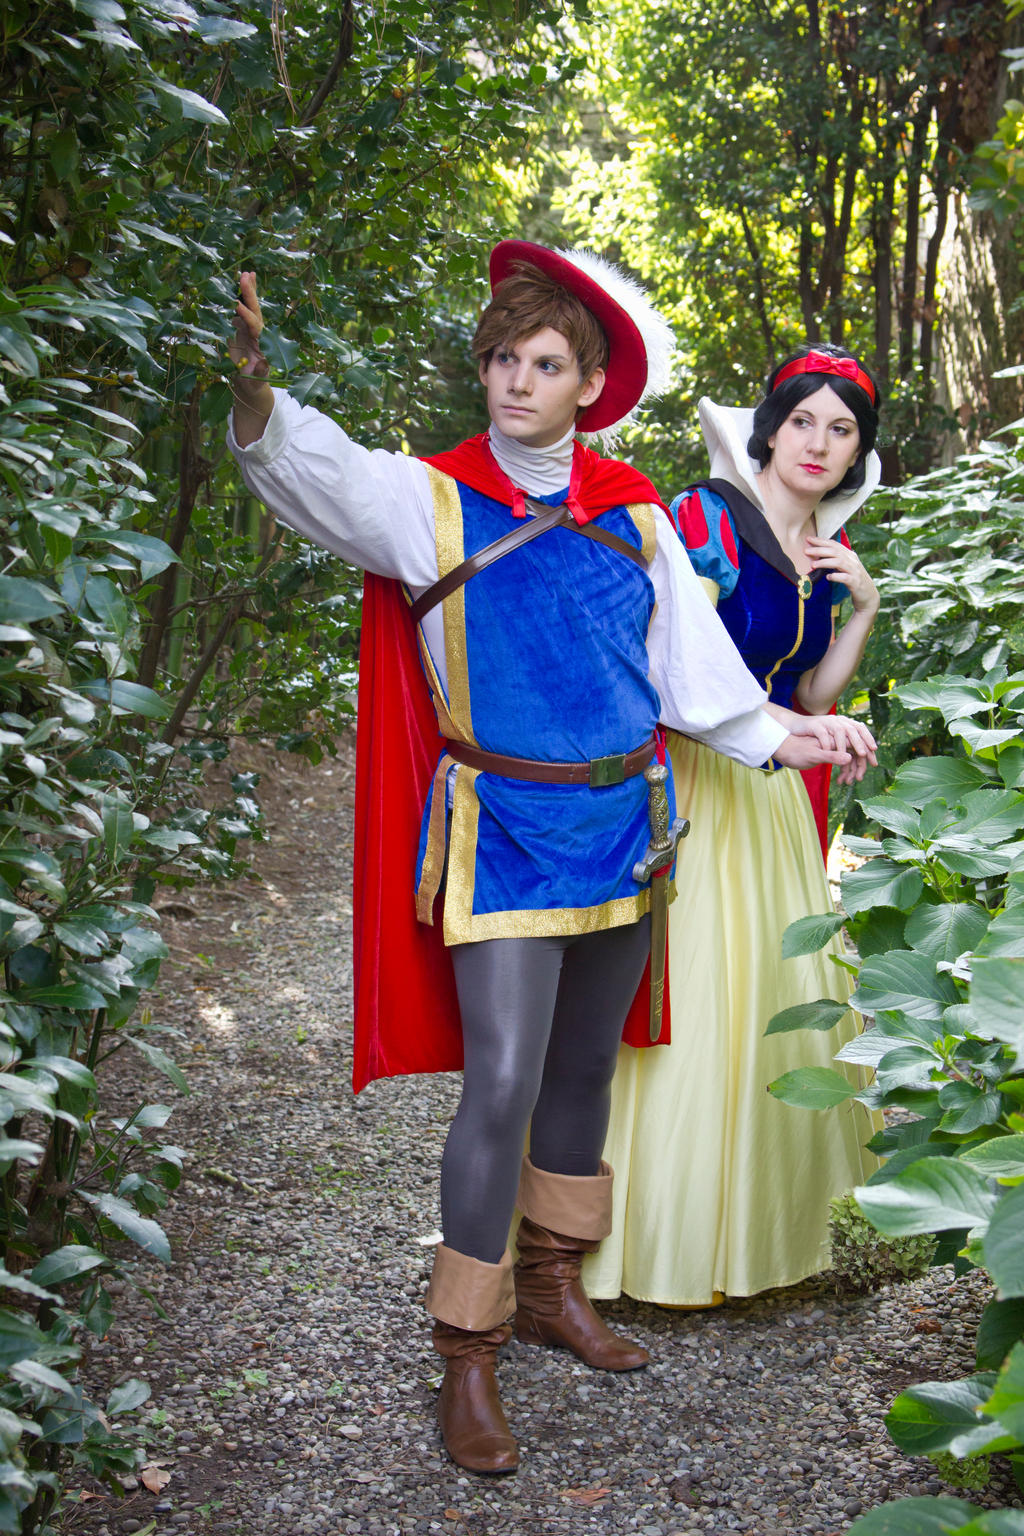 snow white and prince charming by lilie morhiril on deviantart